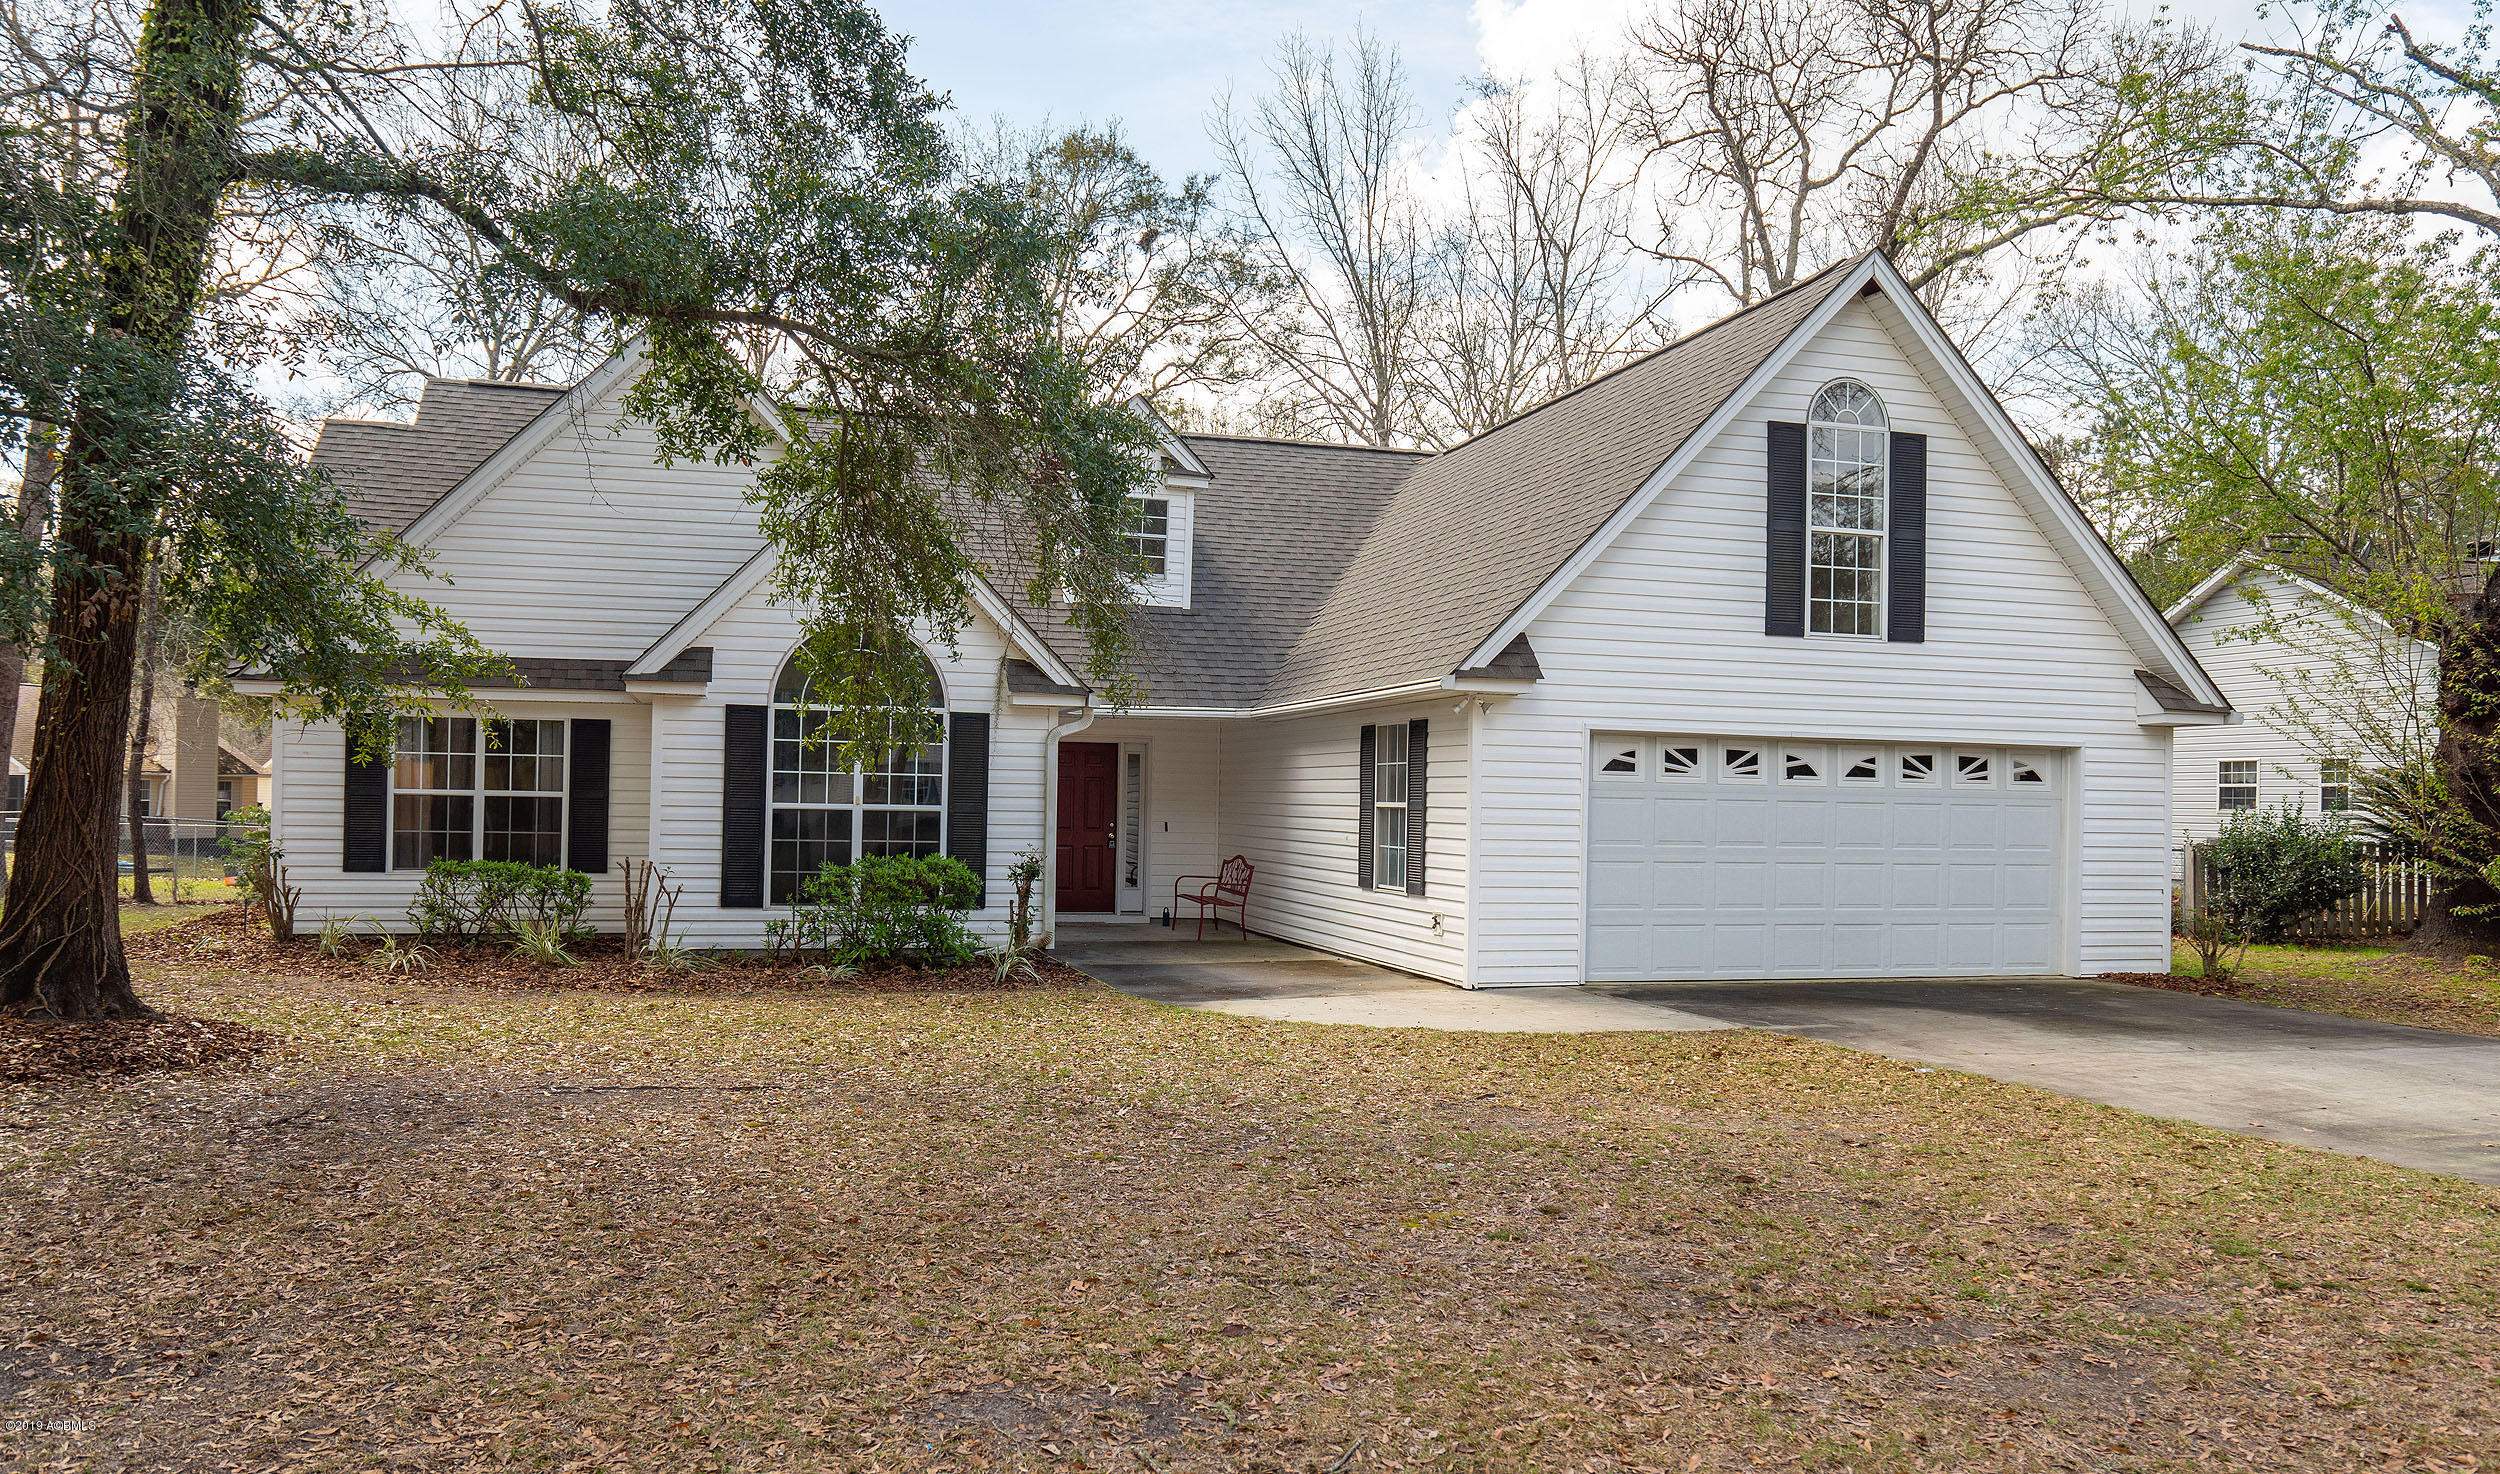 Photo of 5 Lucerne Avenue, Beaufort, SC 29907